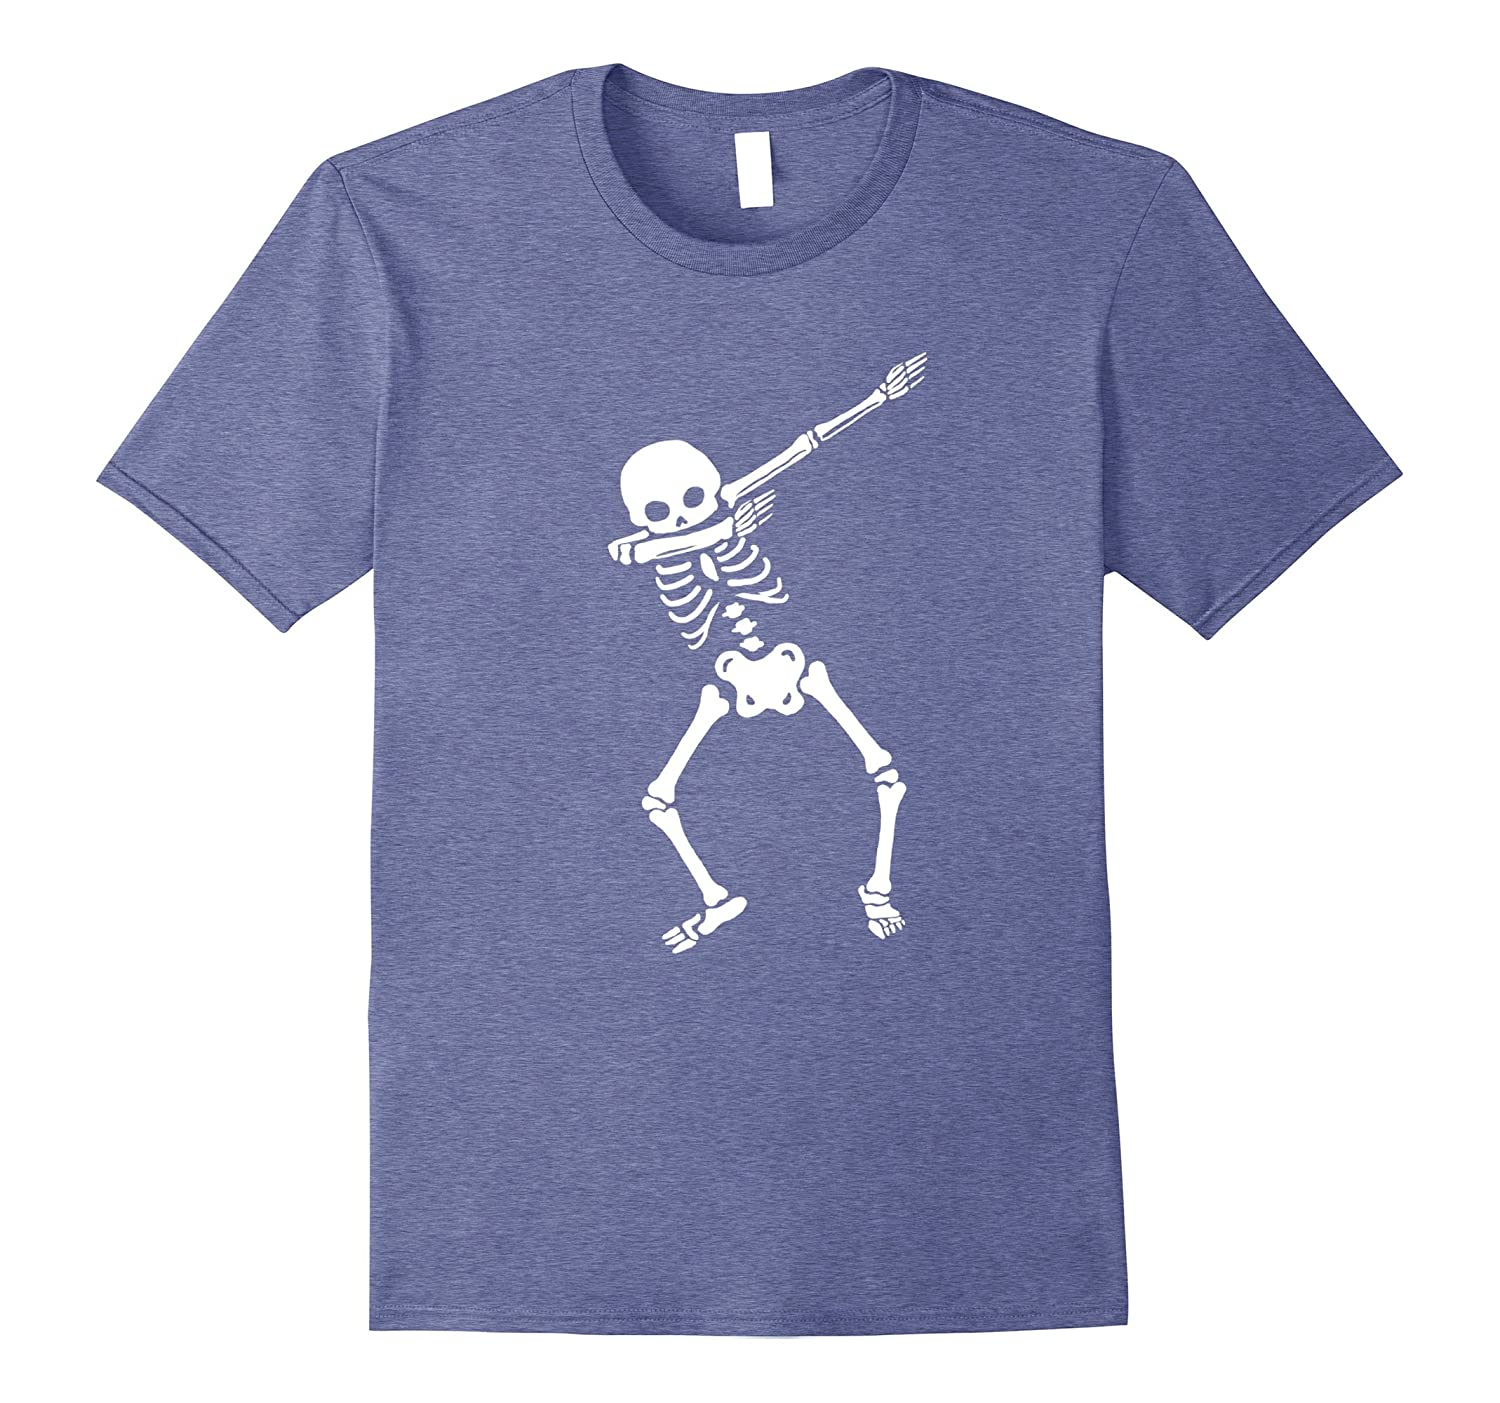 Cool Dabbing Skeleton T Shirt Dab Hip Hop Funny Dance Gift-TD